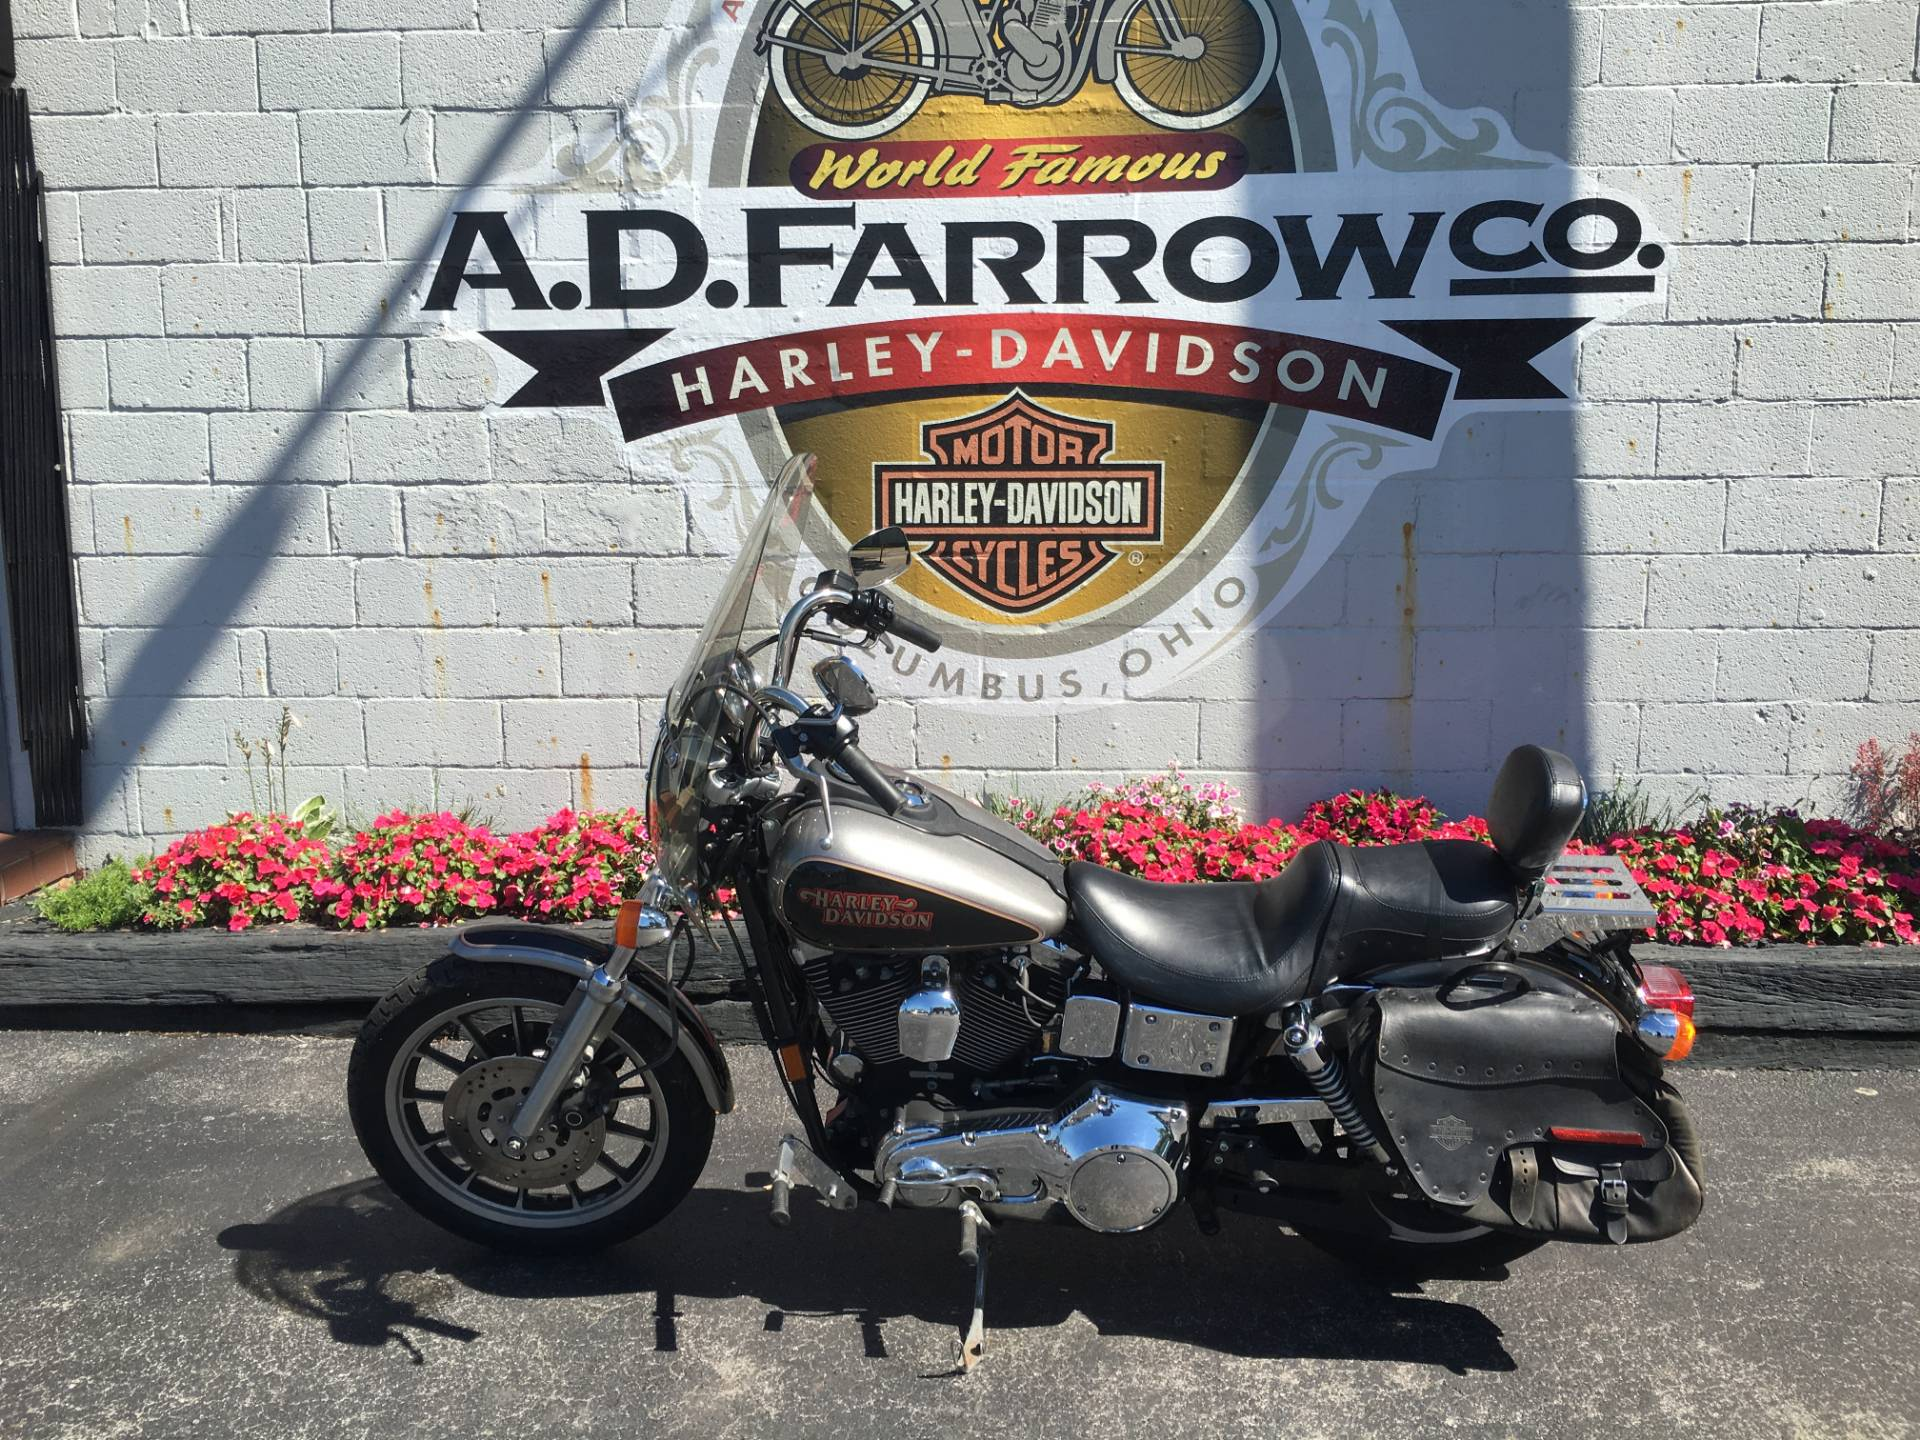 1997 Harley-Davidson fxds in Sunbury, Ohio